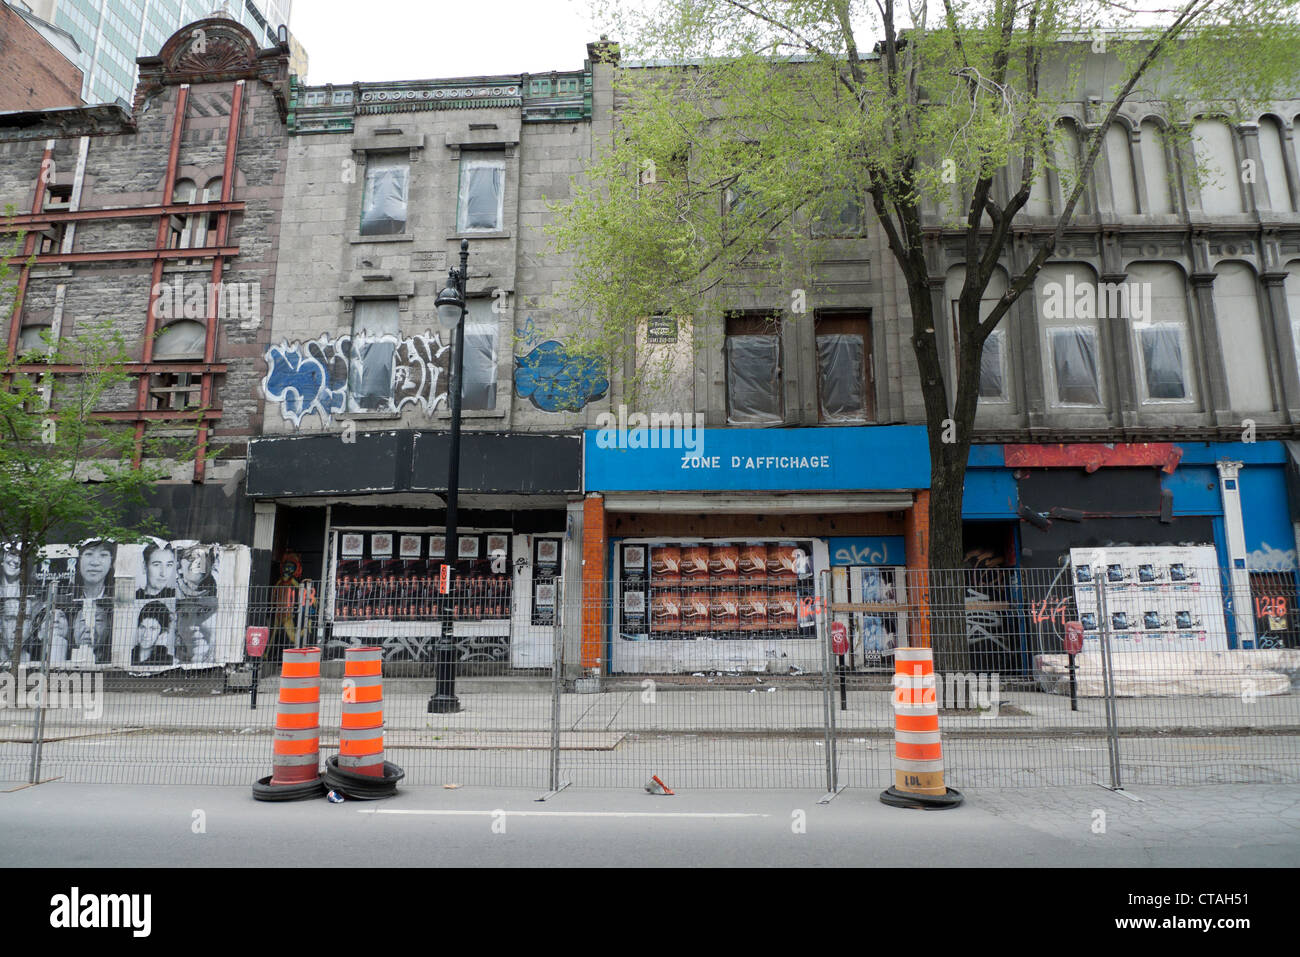 Road works and closed stores in a revitalization area on Boulevard Saint-Laurent Montreal Quebec Canada KATHY DEWITT - Stock Image